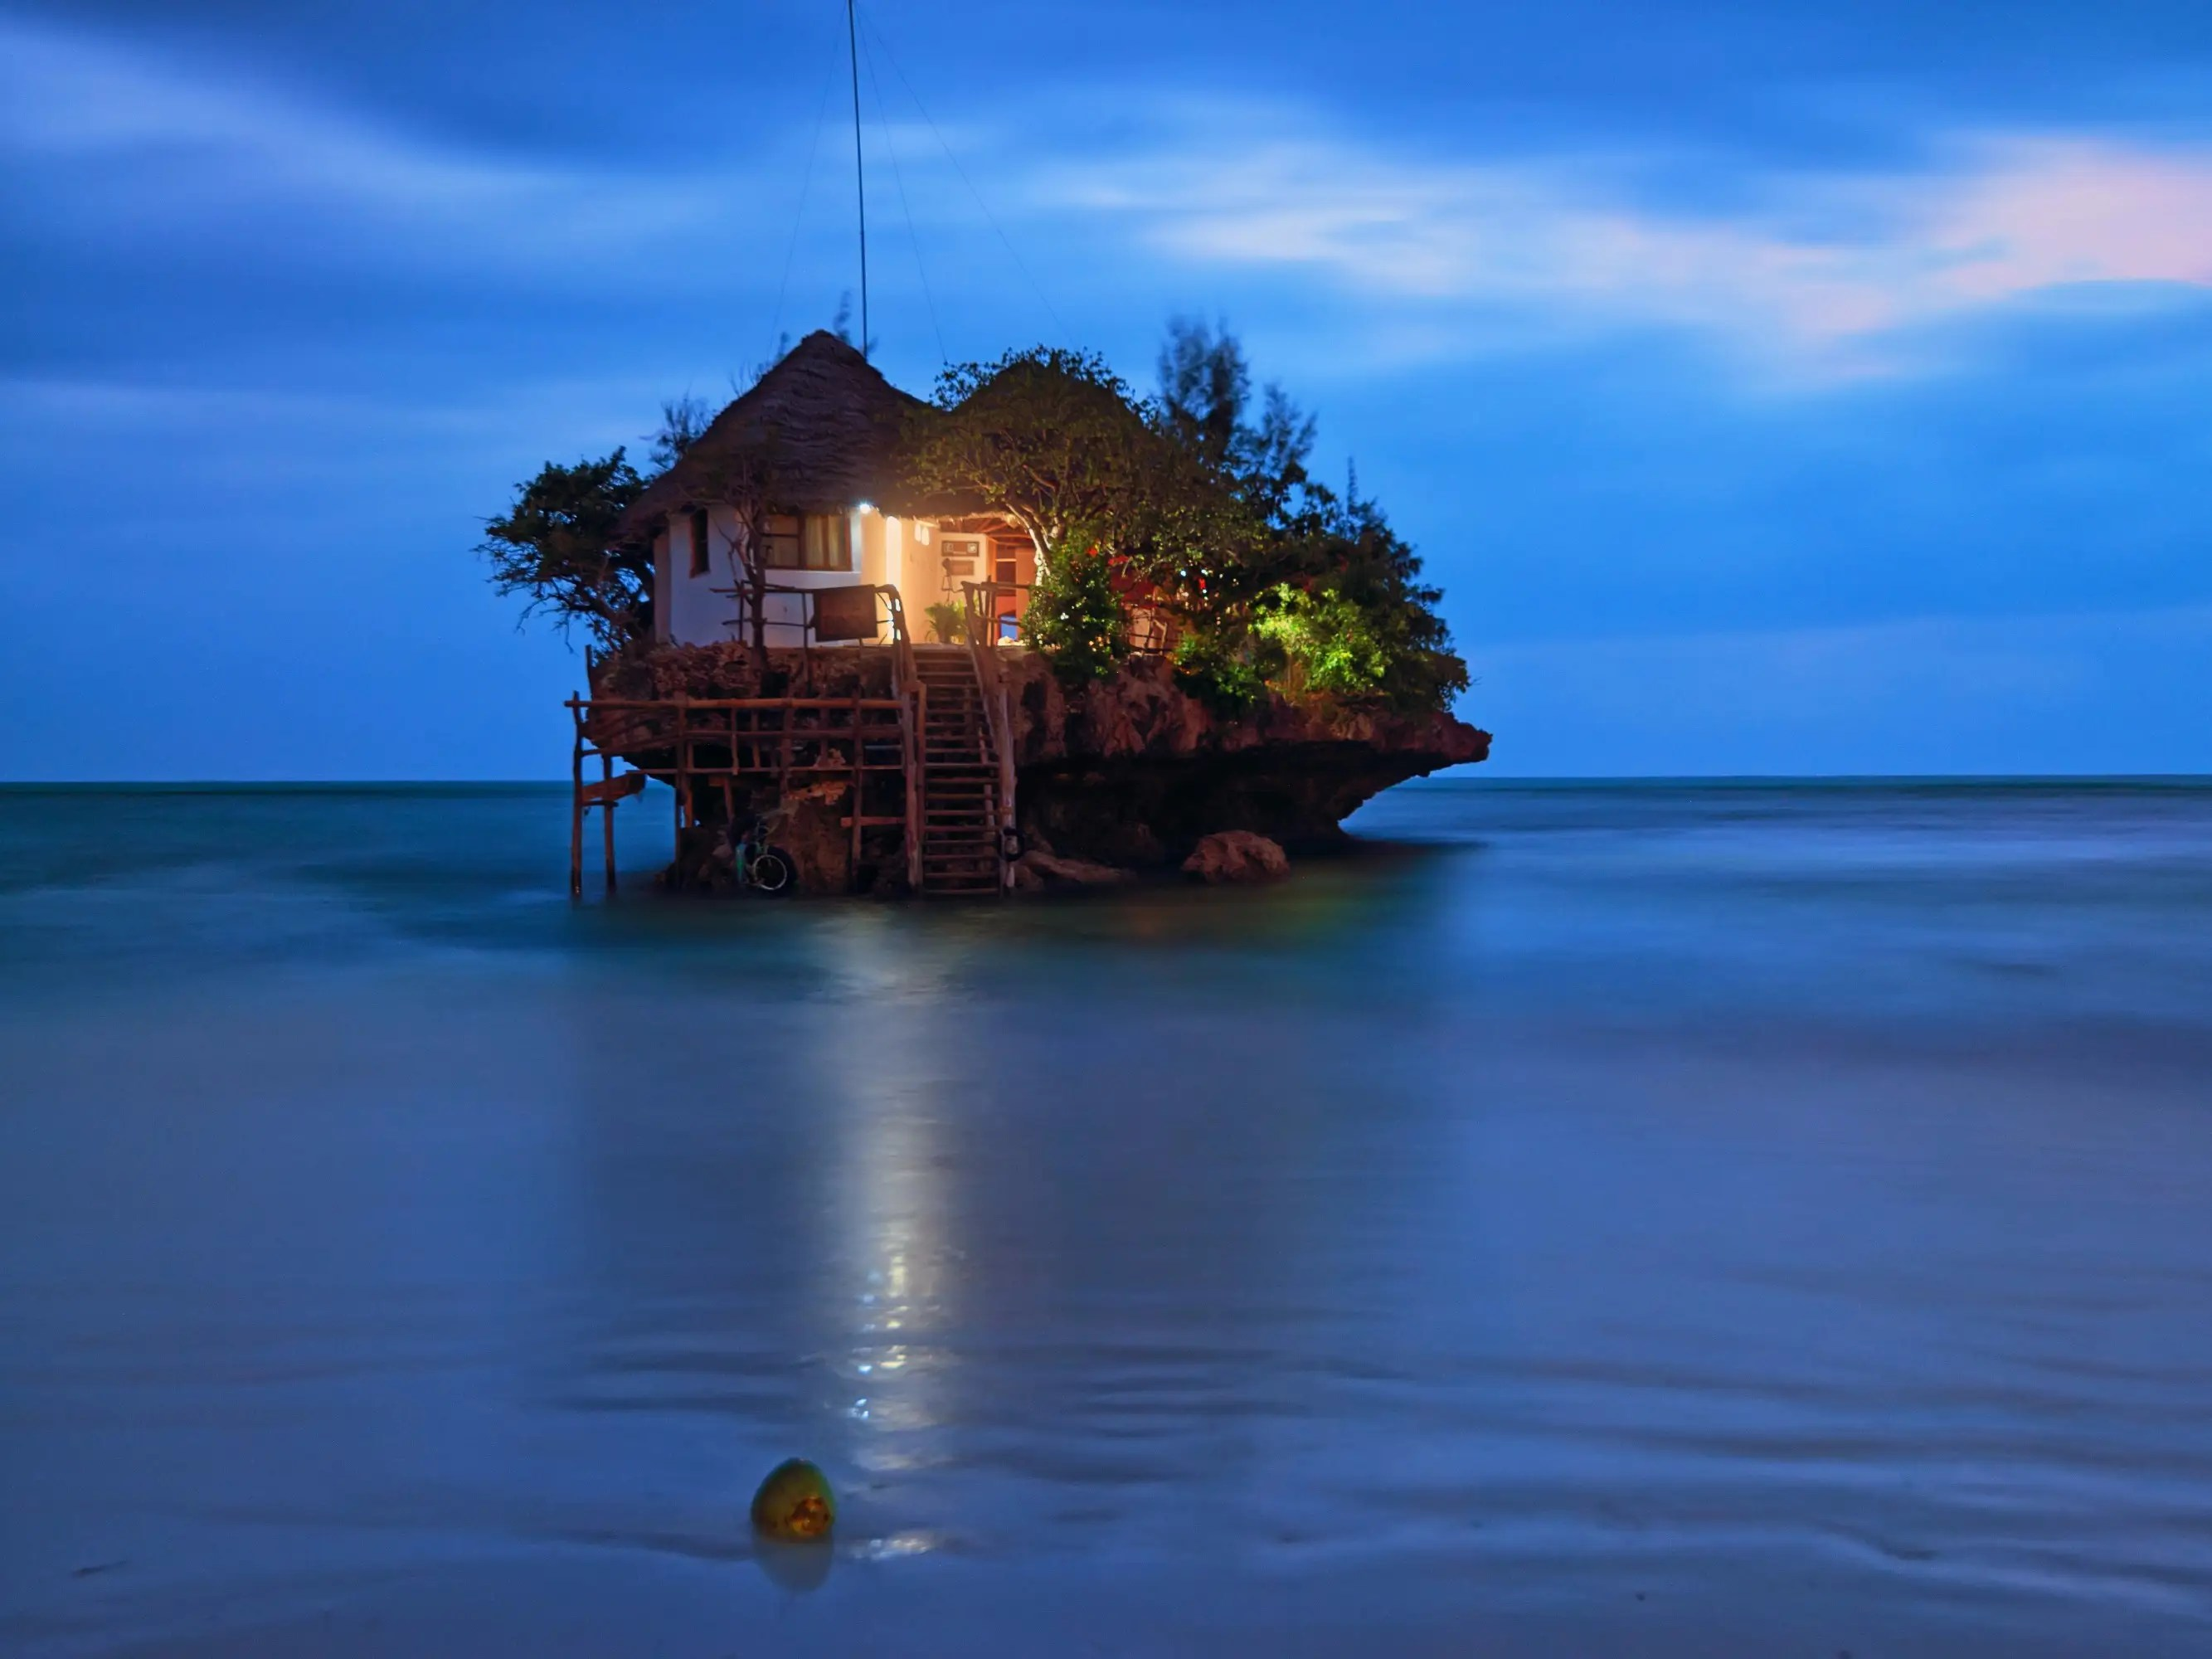 As the name implies, the Rock Restaurant and bar is perched on a rock — one that can be found in the middle of the Indian Ocean. Once a fisherman's post in Zanzibar, you can now get there using its dedicated boat service, or wait for low tide and wade over.